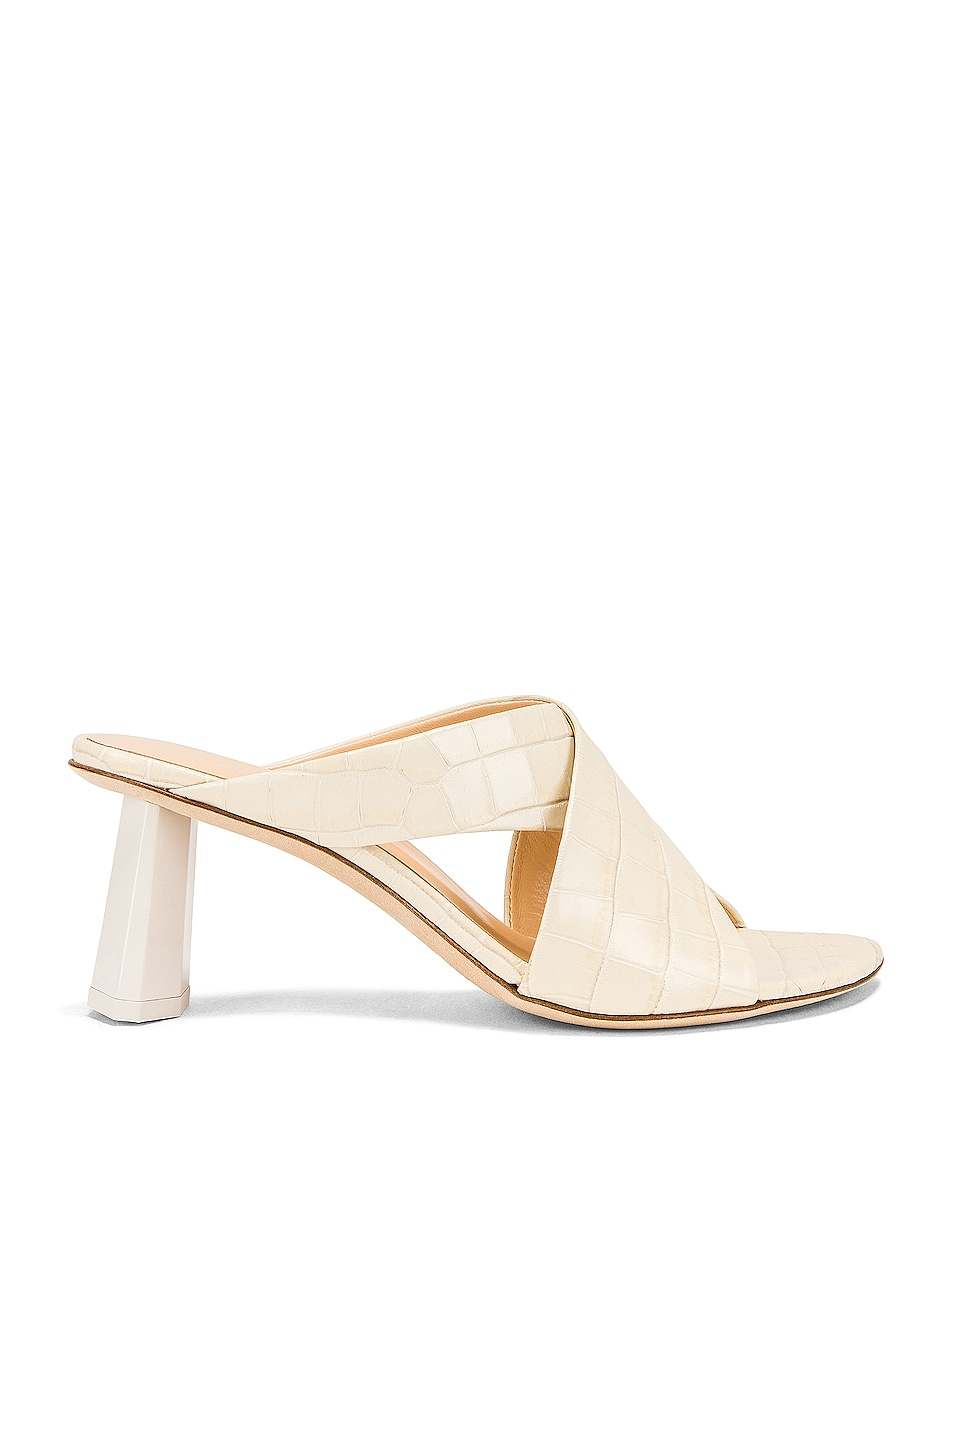 Image 1 of By Far Jaz Mule in Cream Croc